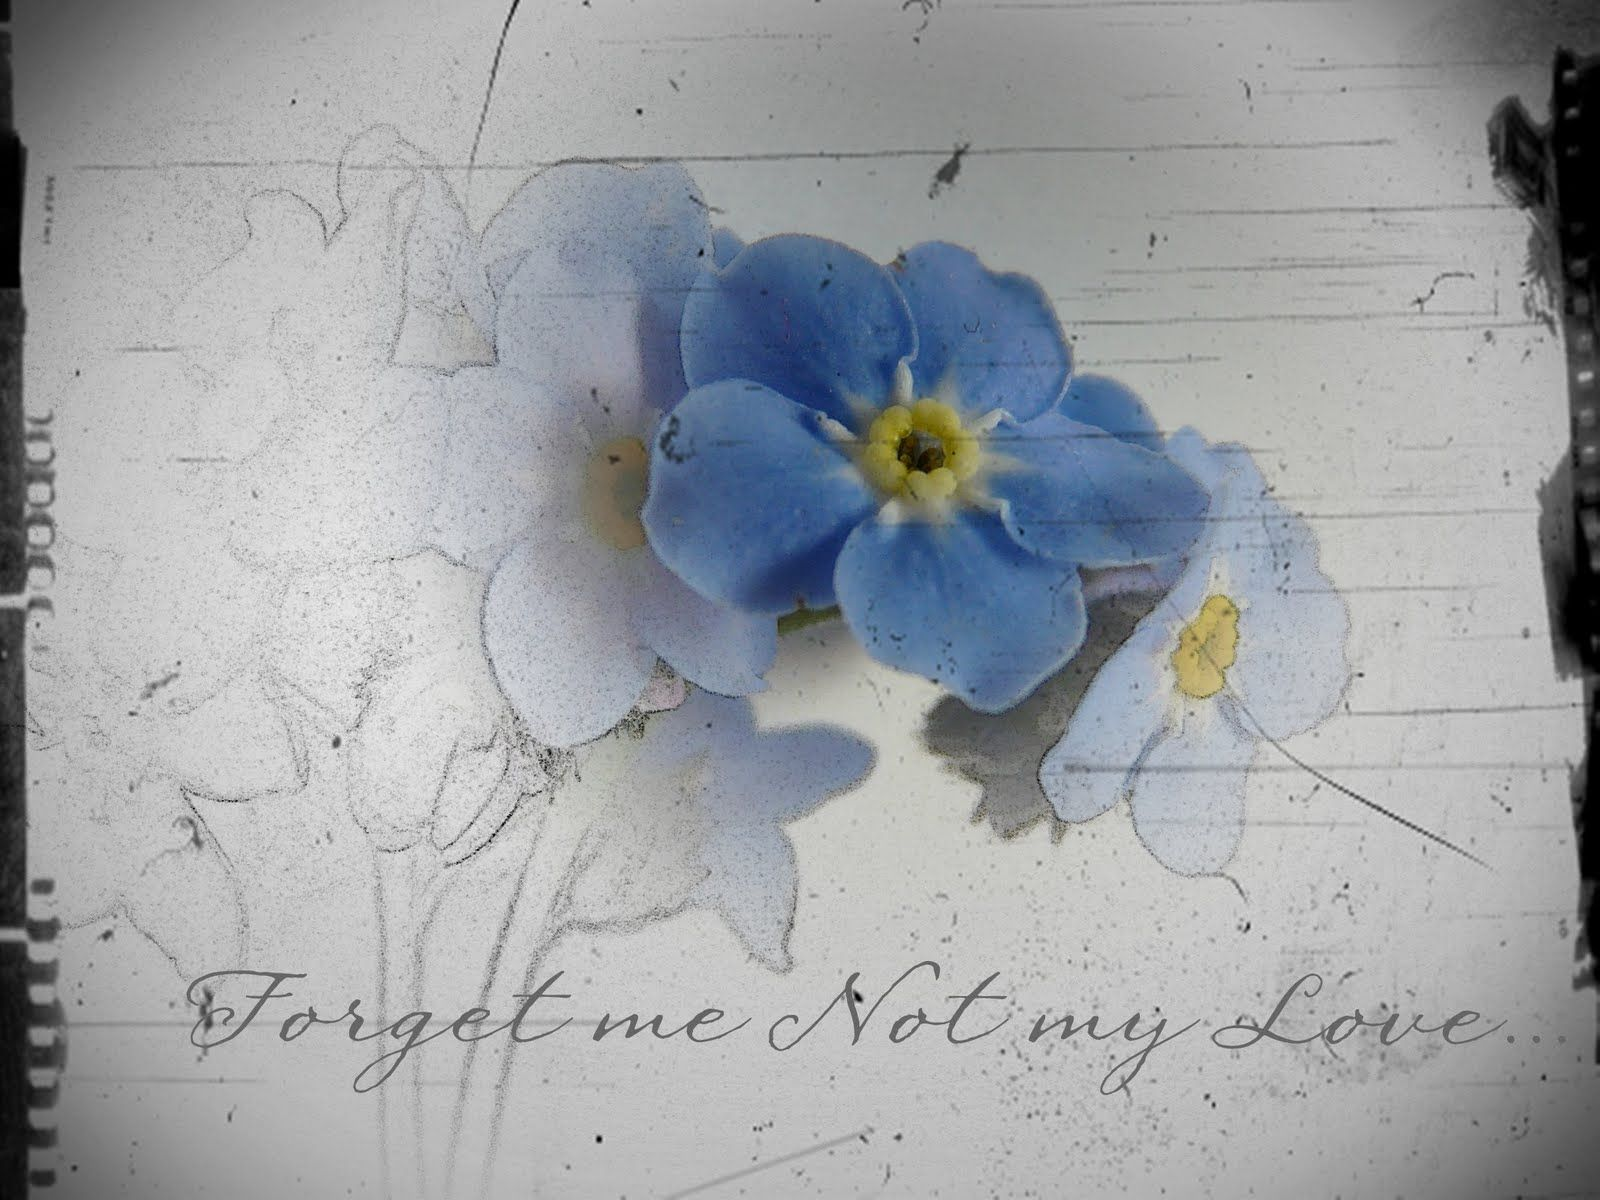 Forget me not flower drawings how to draw forget me not forget me not flower drawings how to draw forget me not ccuart Image collections